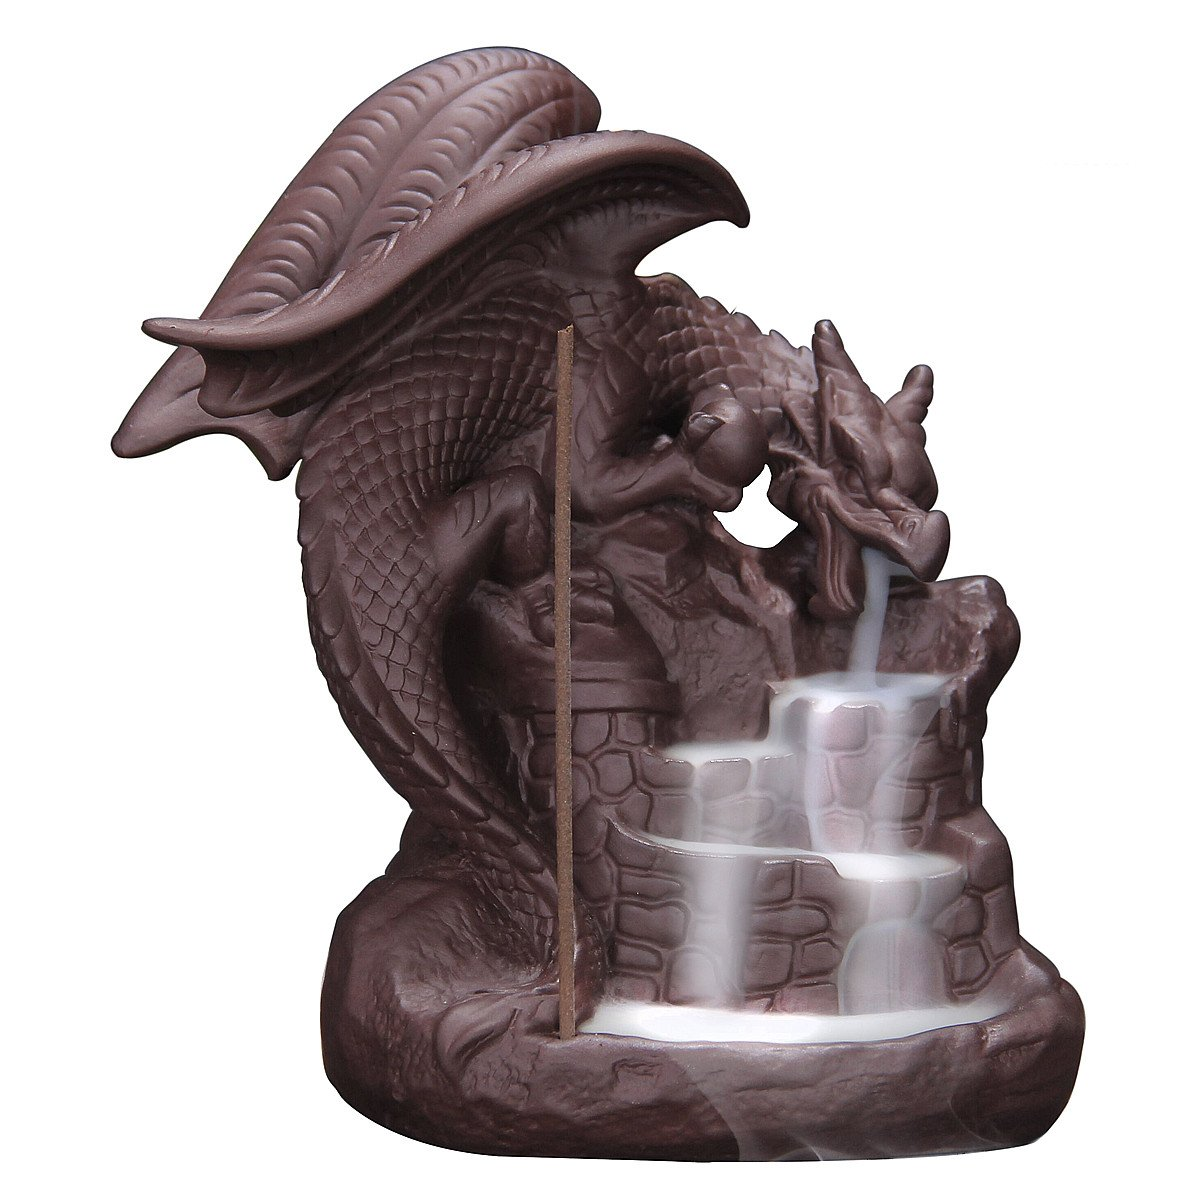 OTOFY Handmade Ceramic Incense Holder, Backflow Incense Burner Figurine Incense Cone Holders Home Decor Gift Decorations Statue Ornaments (Fly Dragon) by OTOFY (Image #1)